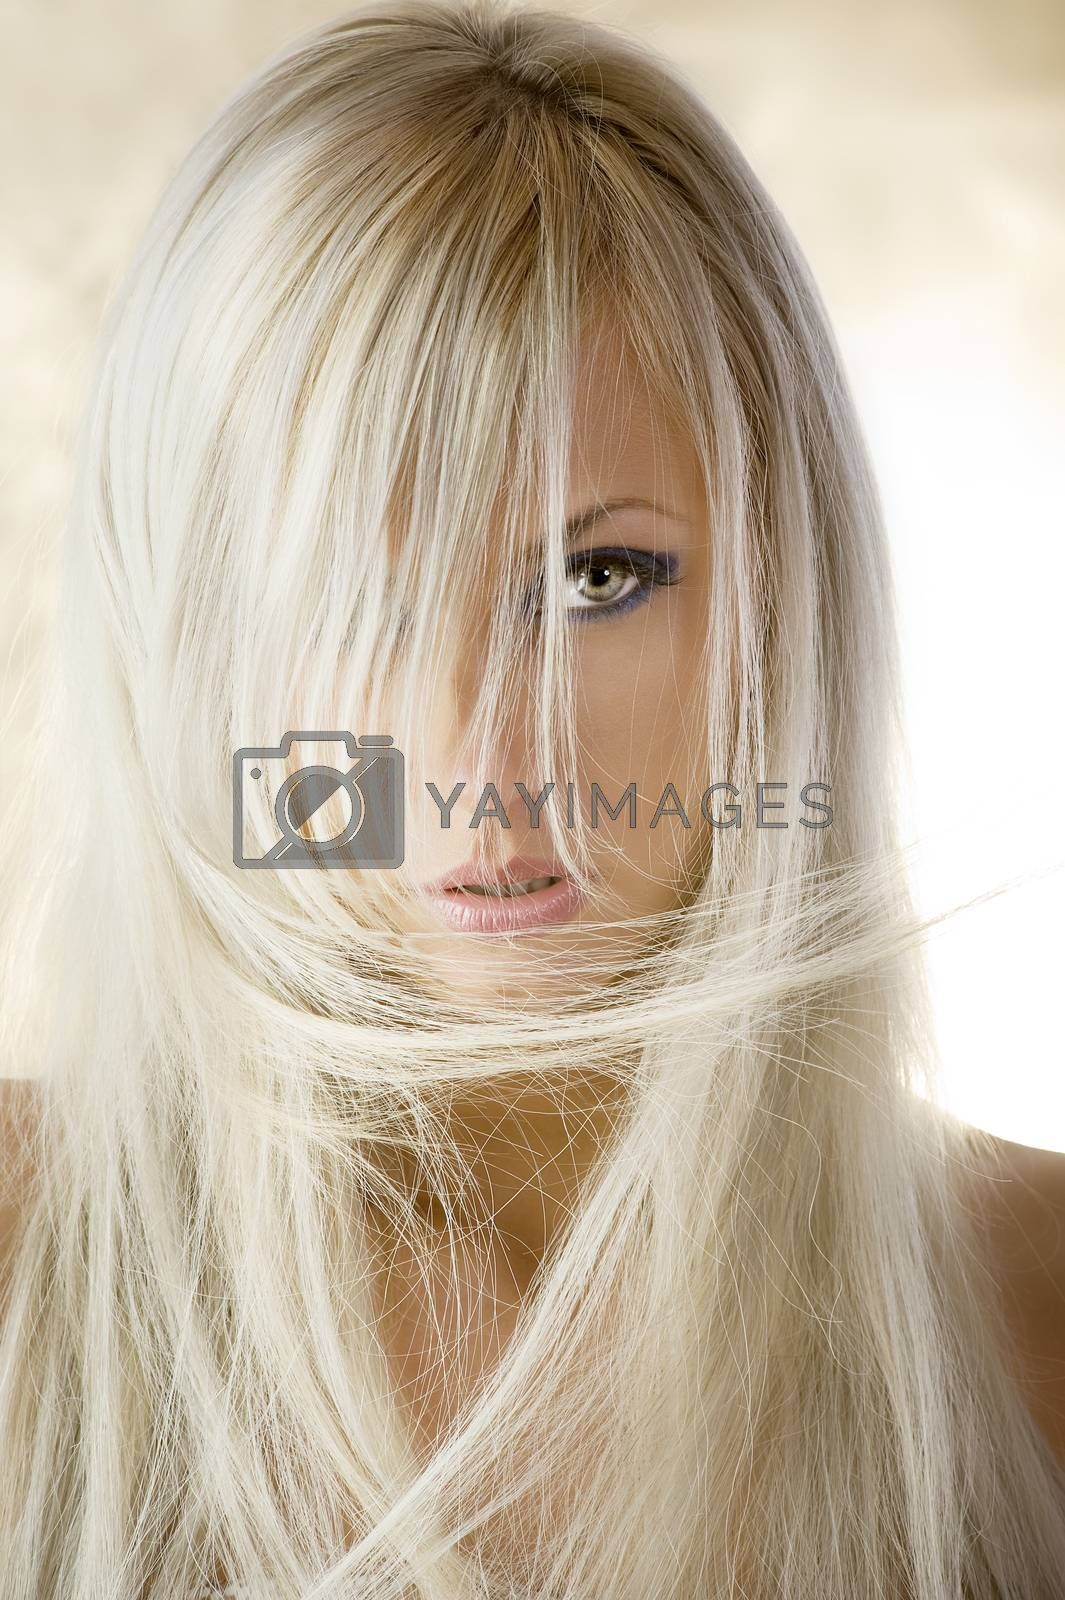 Royalty free image of the blond girl by fotoCD